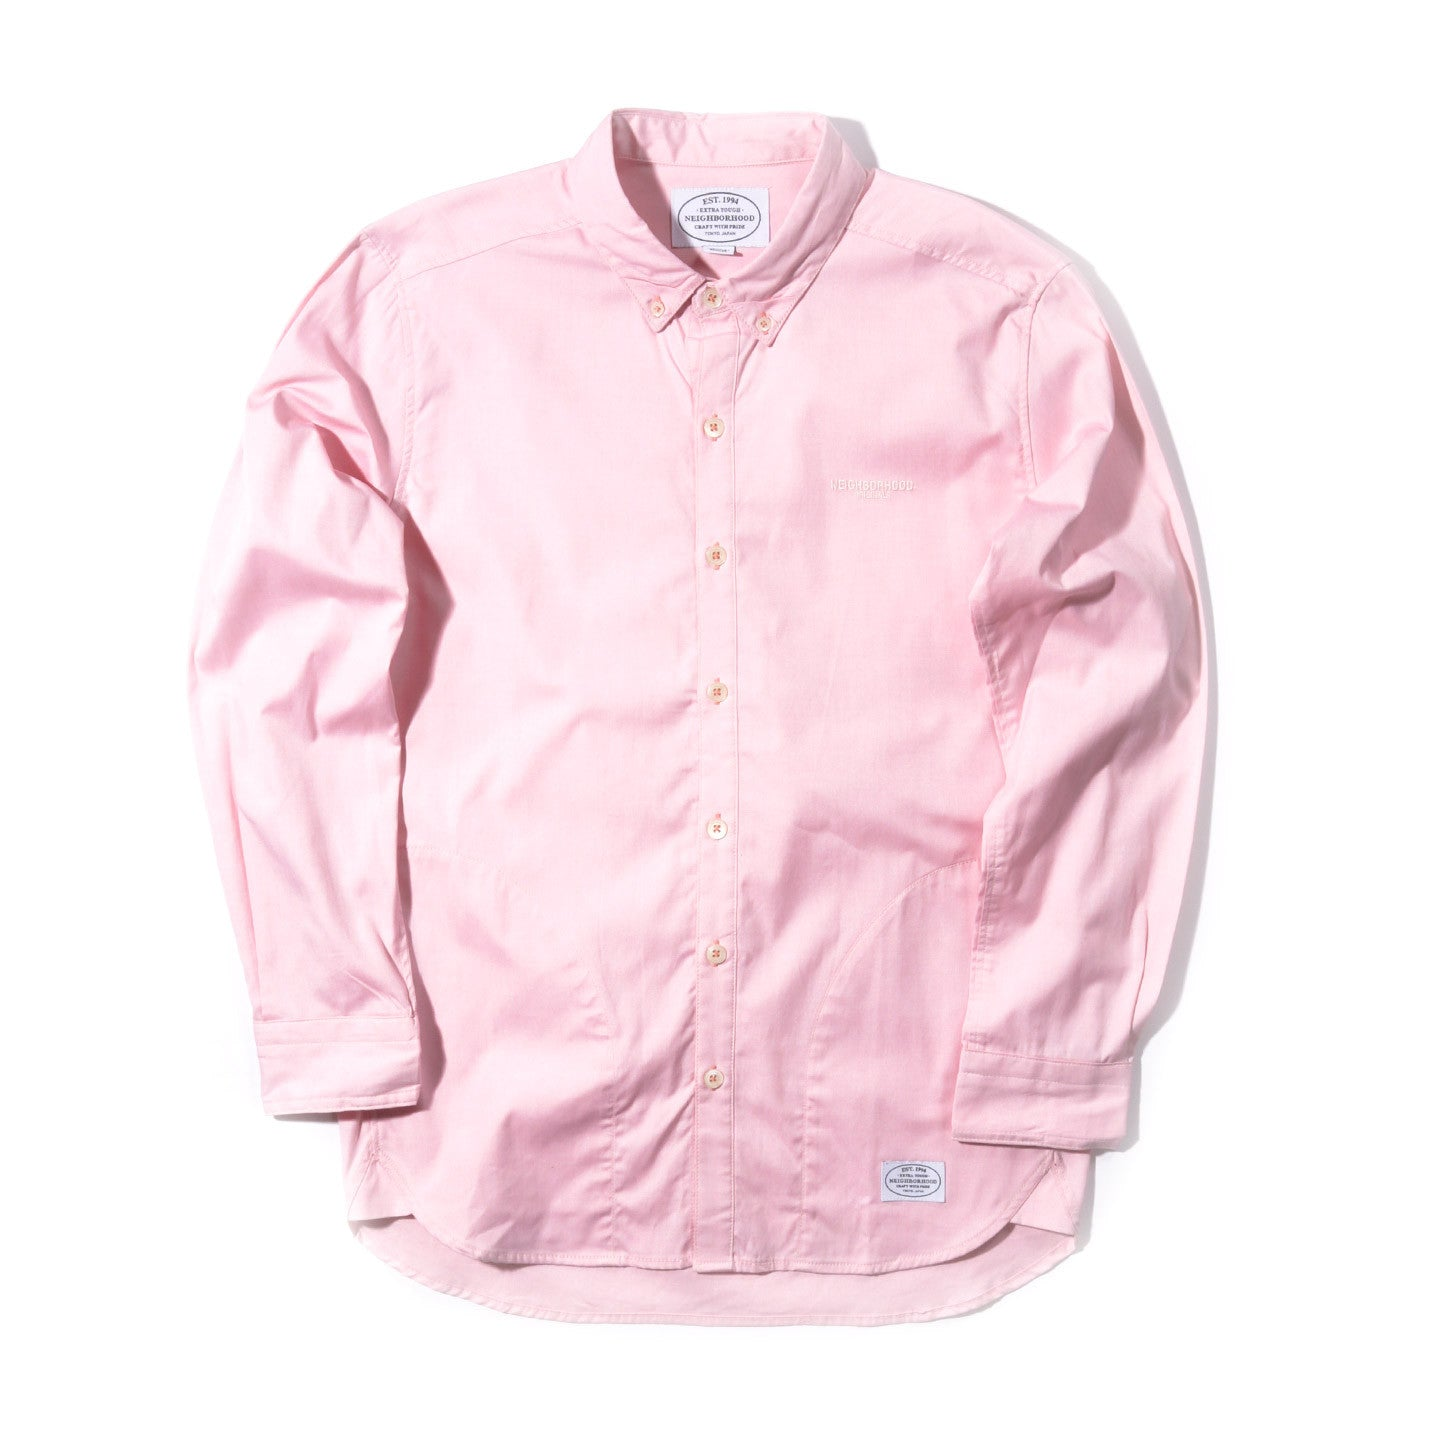 NEIGHBORHOOD CLASSIC OXFORD SHIRT PINK